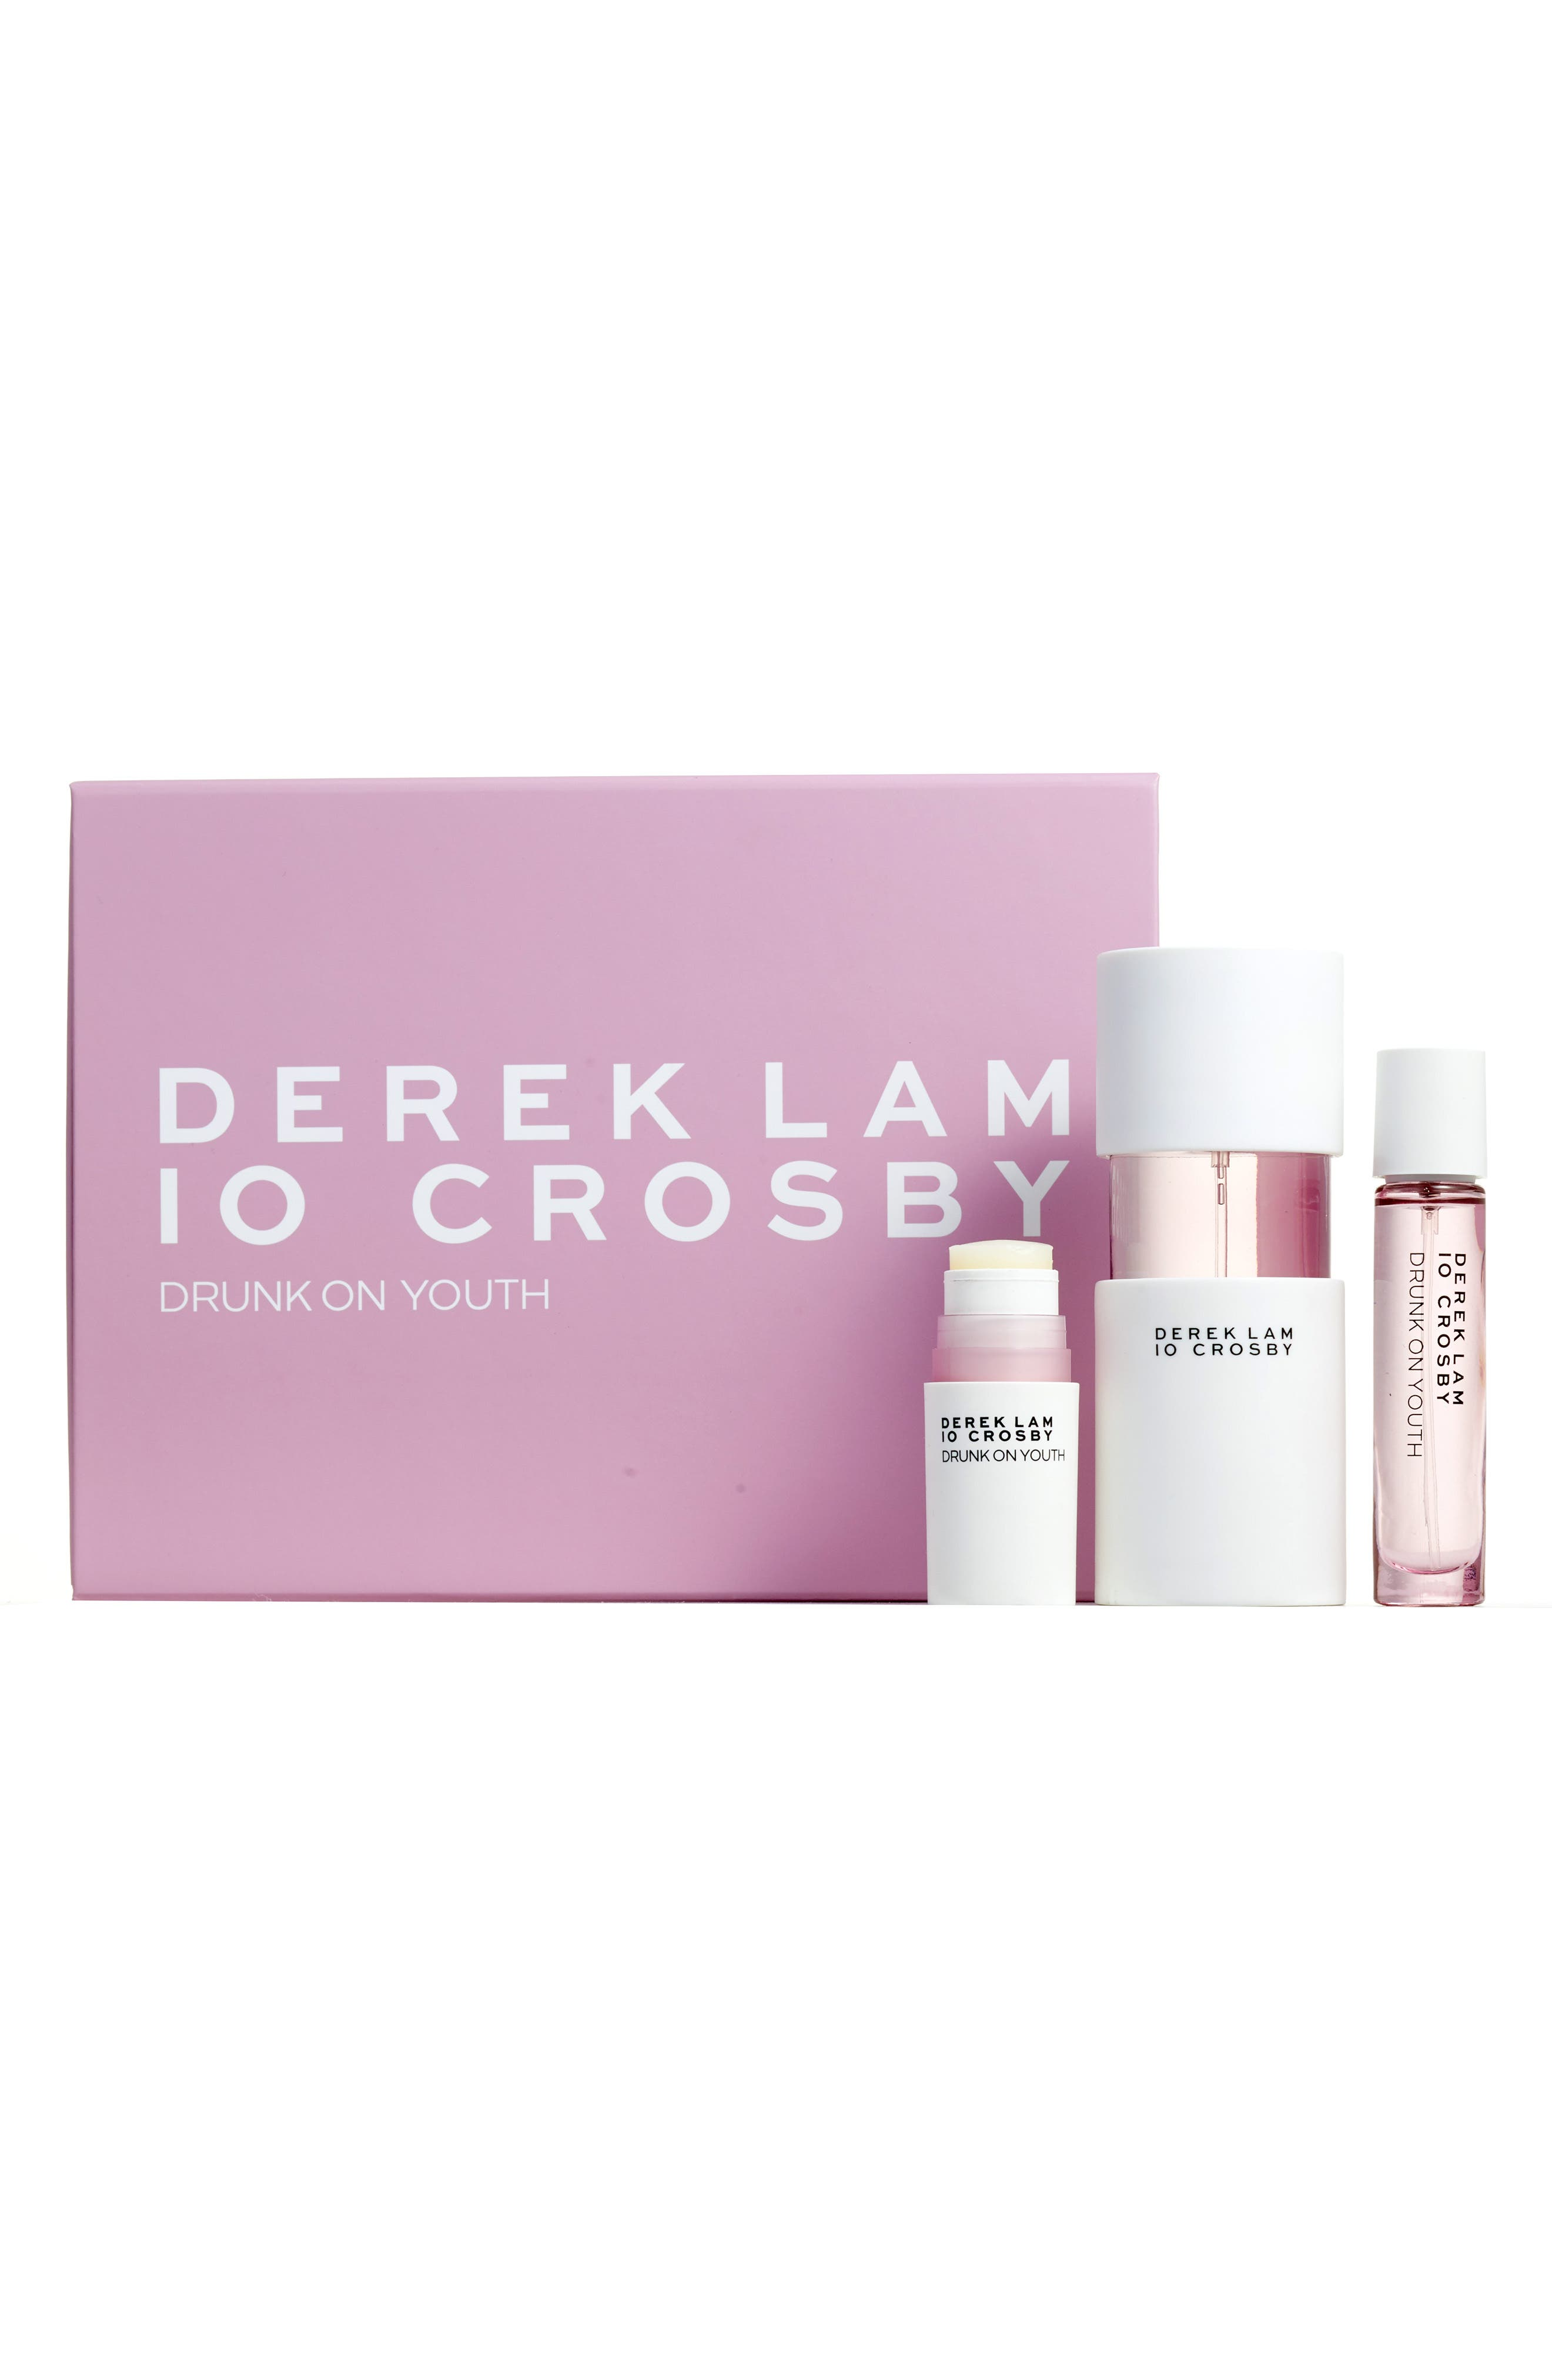 Derek Lam Drunk on Youth 10 Crosby Set ($158 Value)